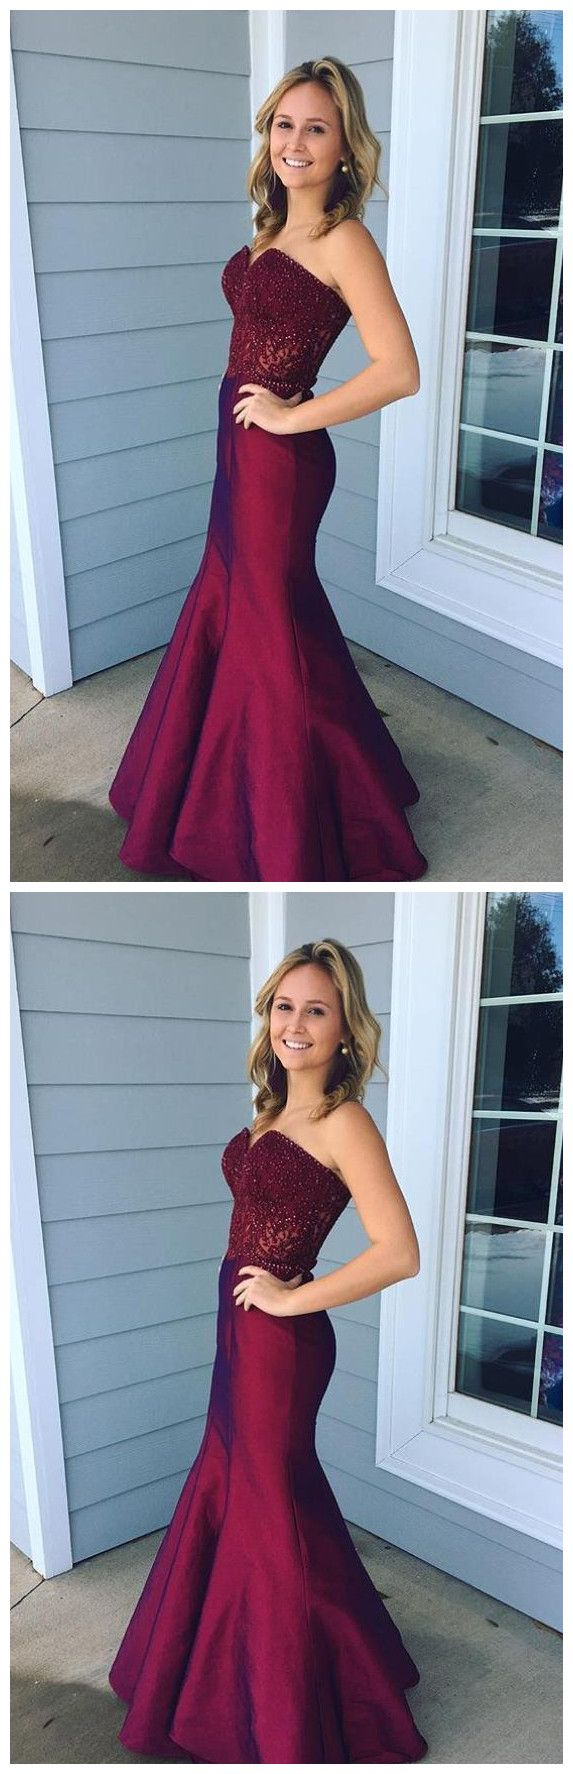 Strapless sweethear lace burgundy prom dresses mermaid evening